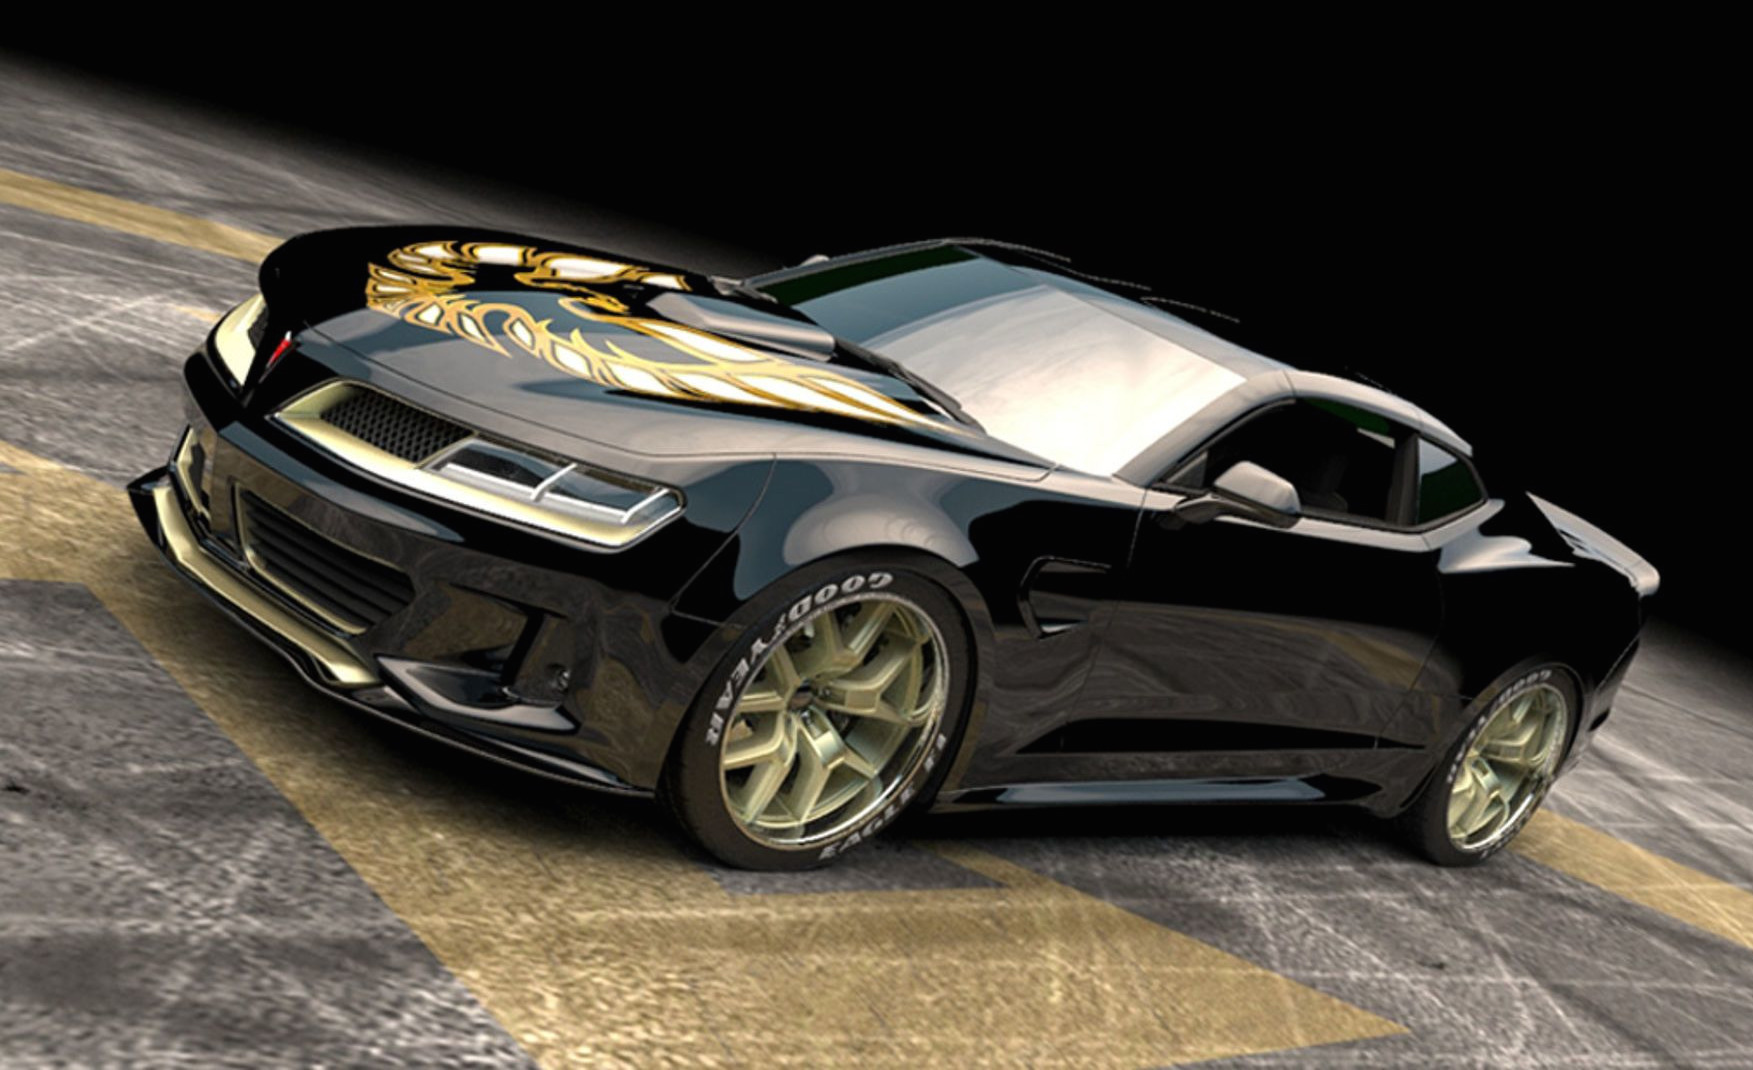 new camaro based trans am kit debuts at ny show performancedrive. Black Bedroom Furniture Sets. Home Design Ideas